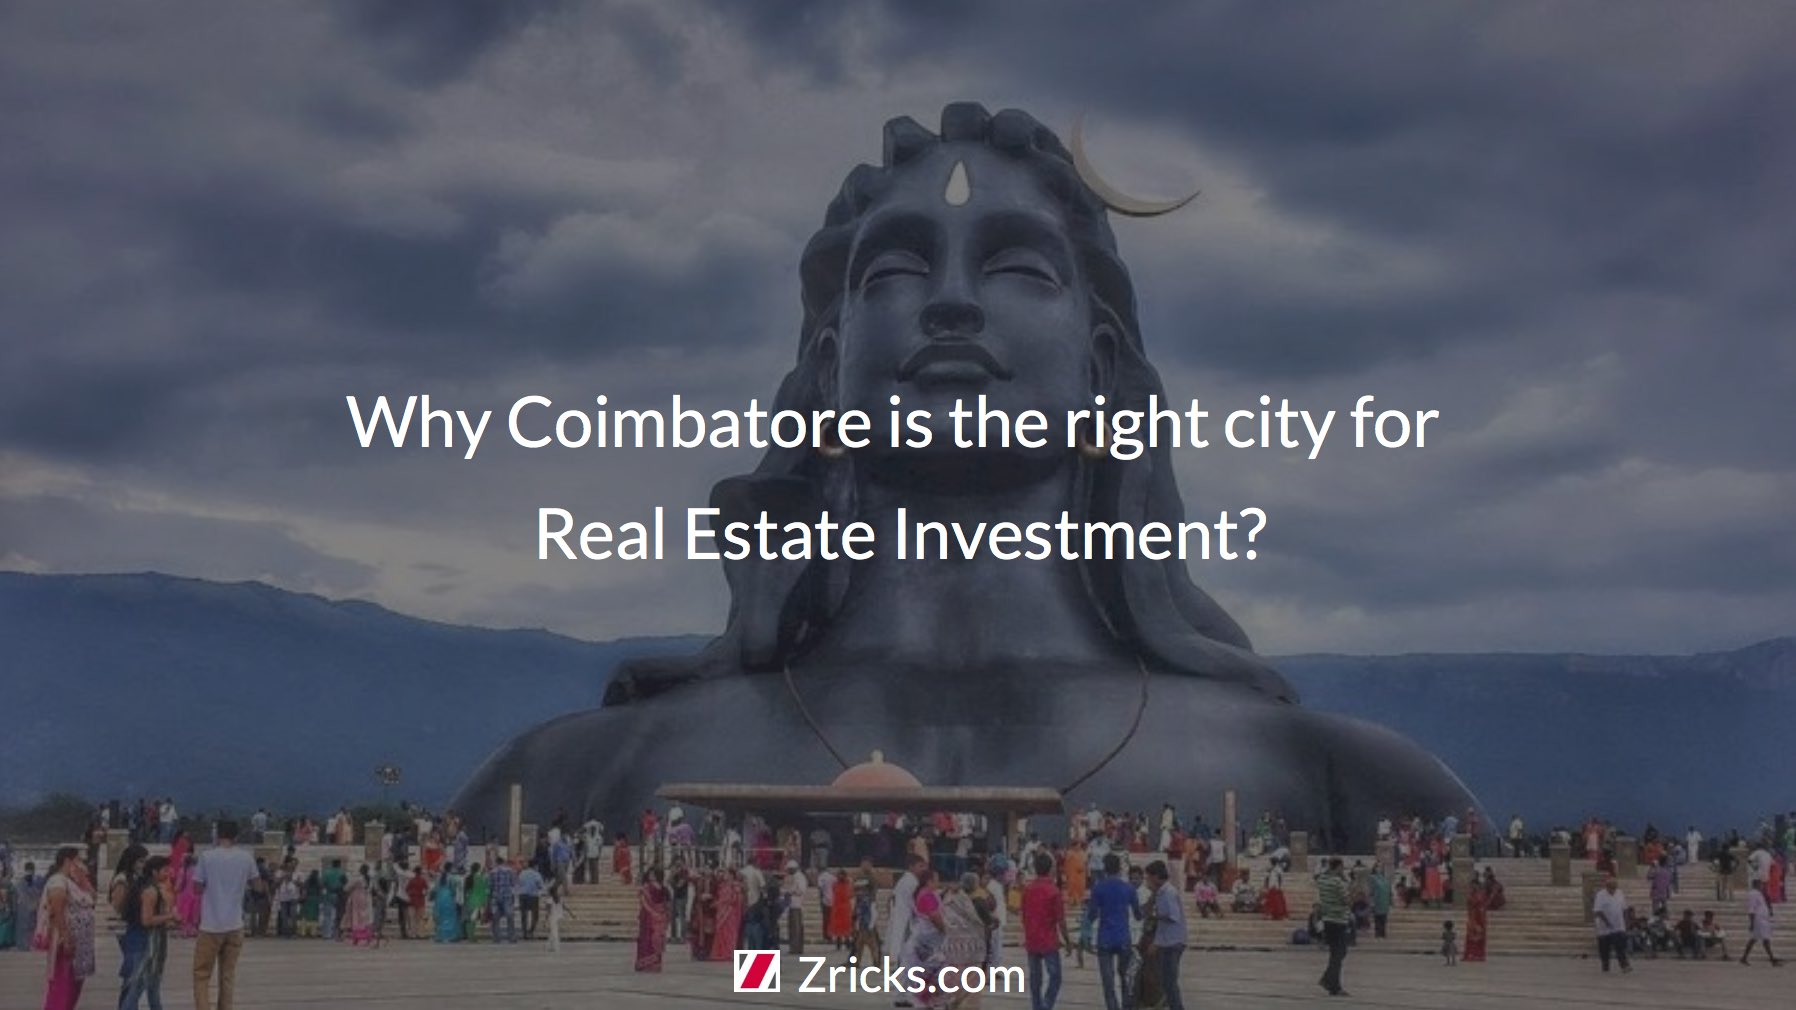 Why Coimbatore is the Right City for Real Estate Investment